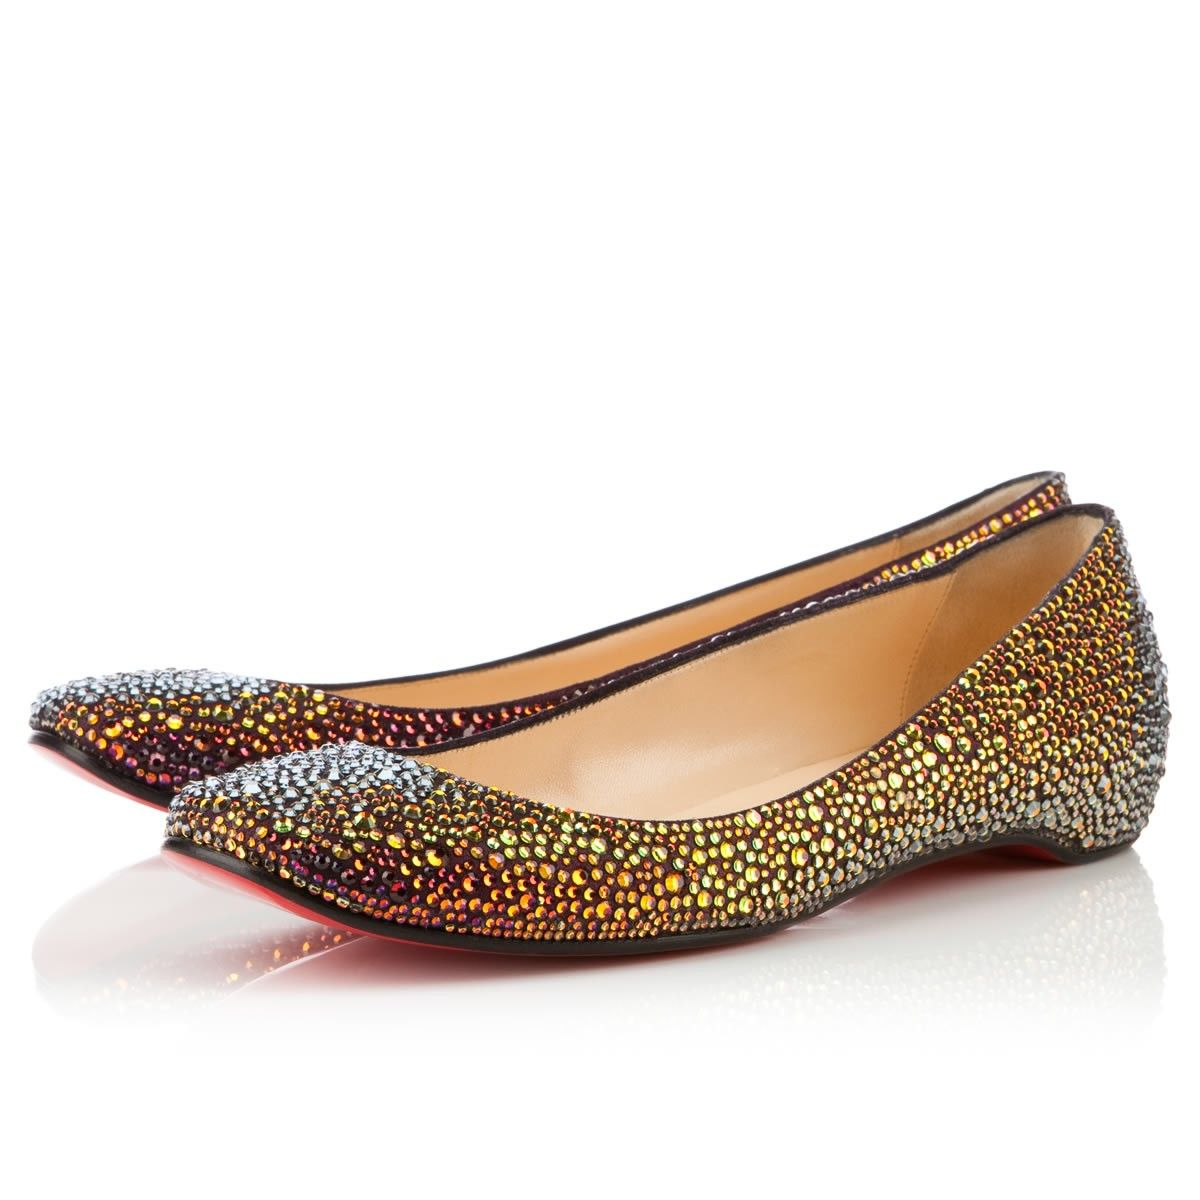 47a1324dbd3 Christian Louboutin Gozul Strass Flat | SHOES and funky bags | Flats ...